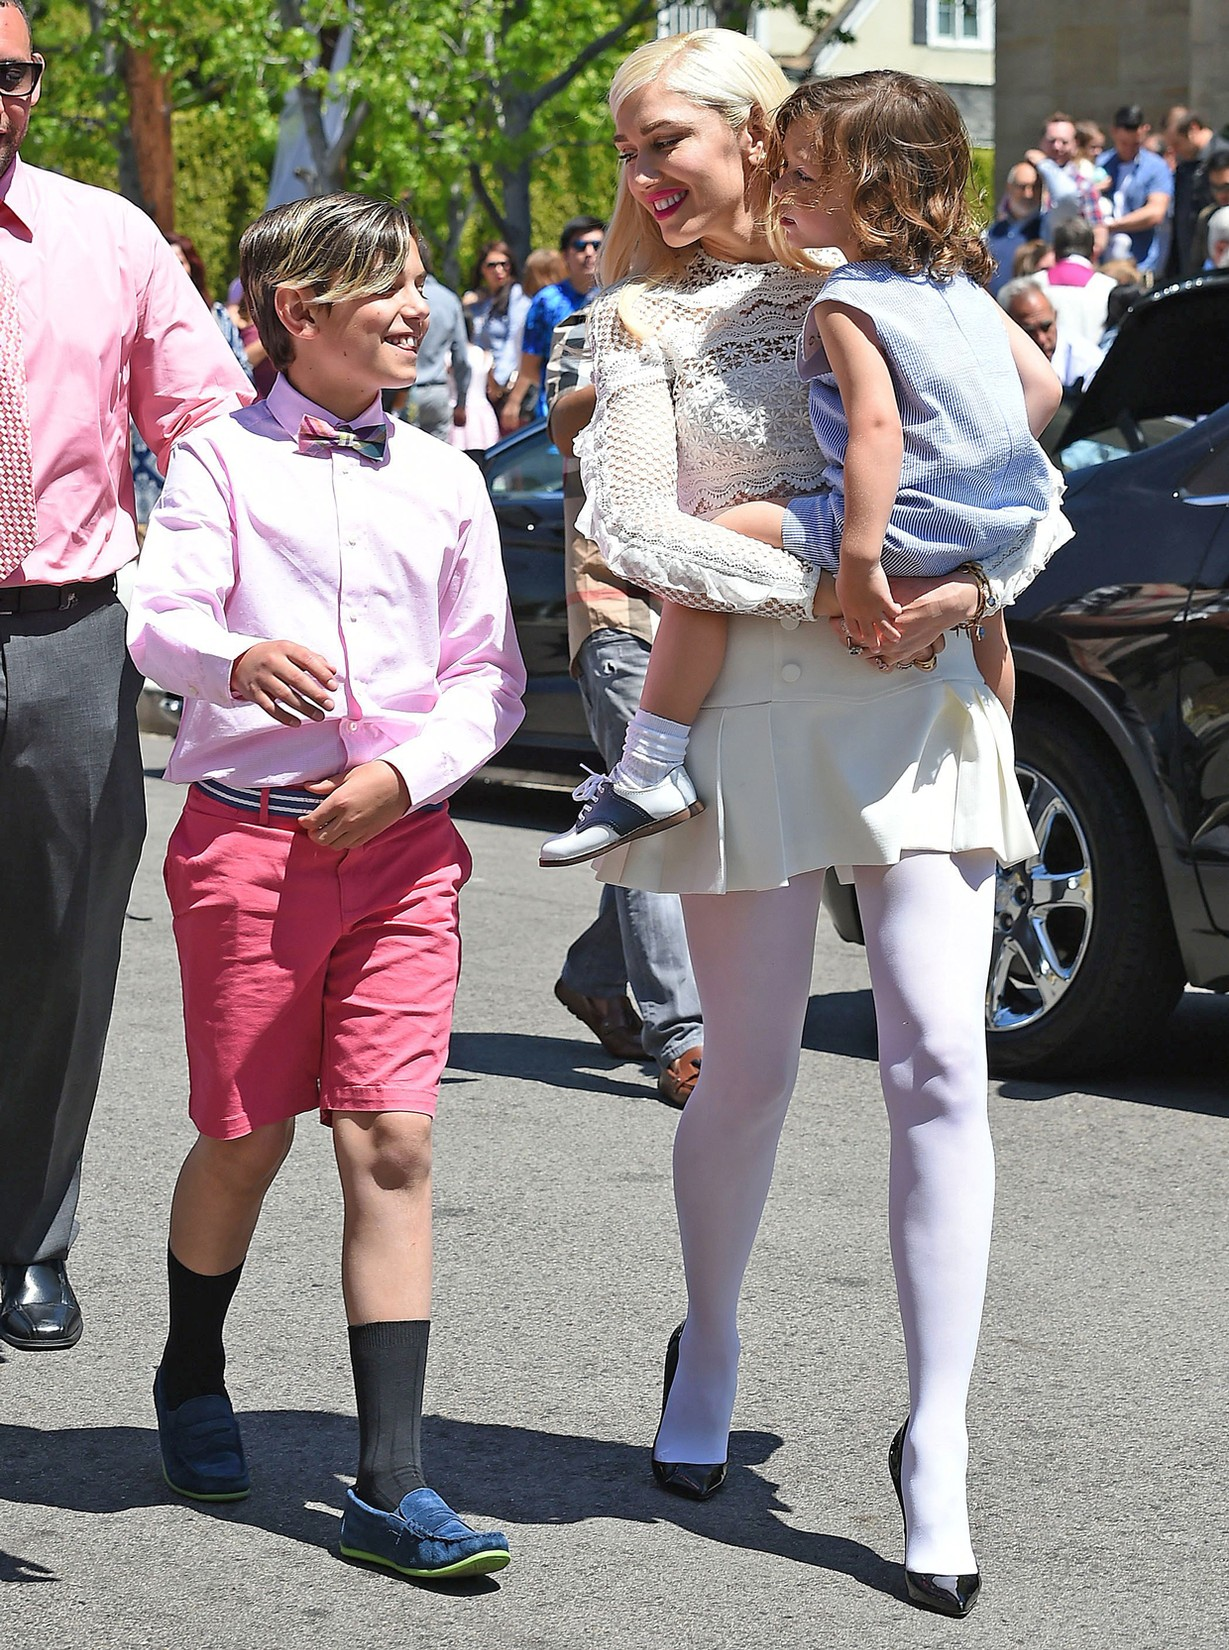 Gwen Stefani takes baby Apollo and his big brothers Kingston and Zuma Rossdale to celebrate Easter Sunday at Church on April 16, 2017 in Los Angeles.